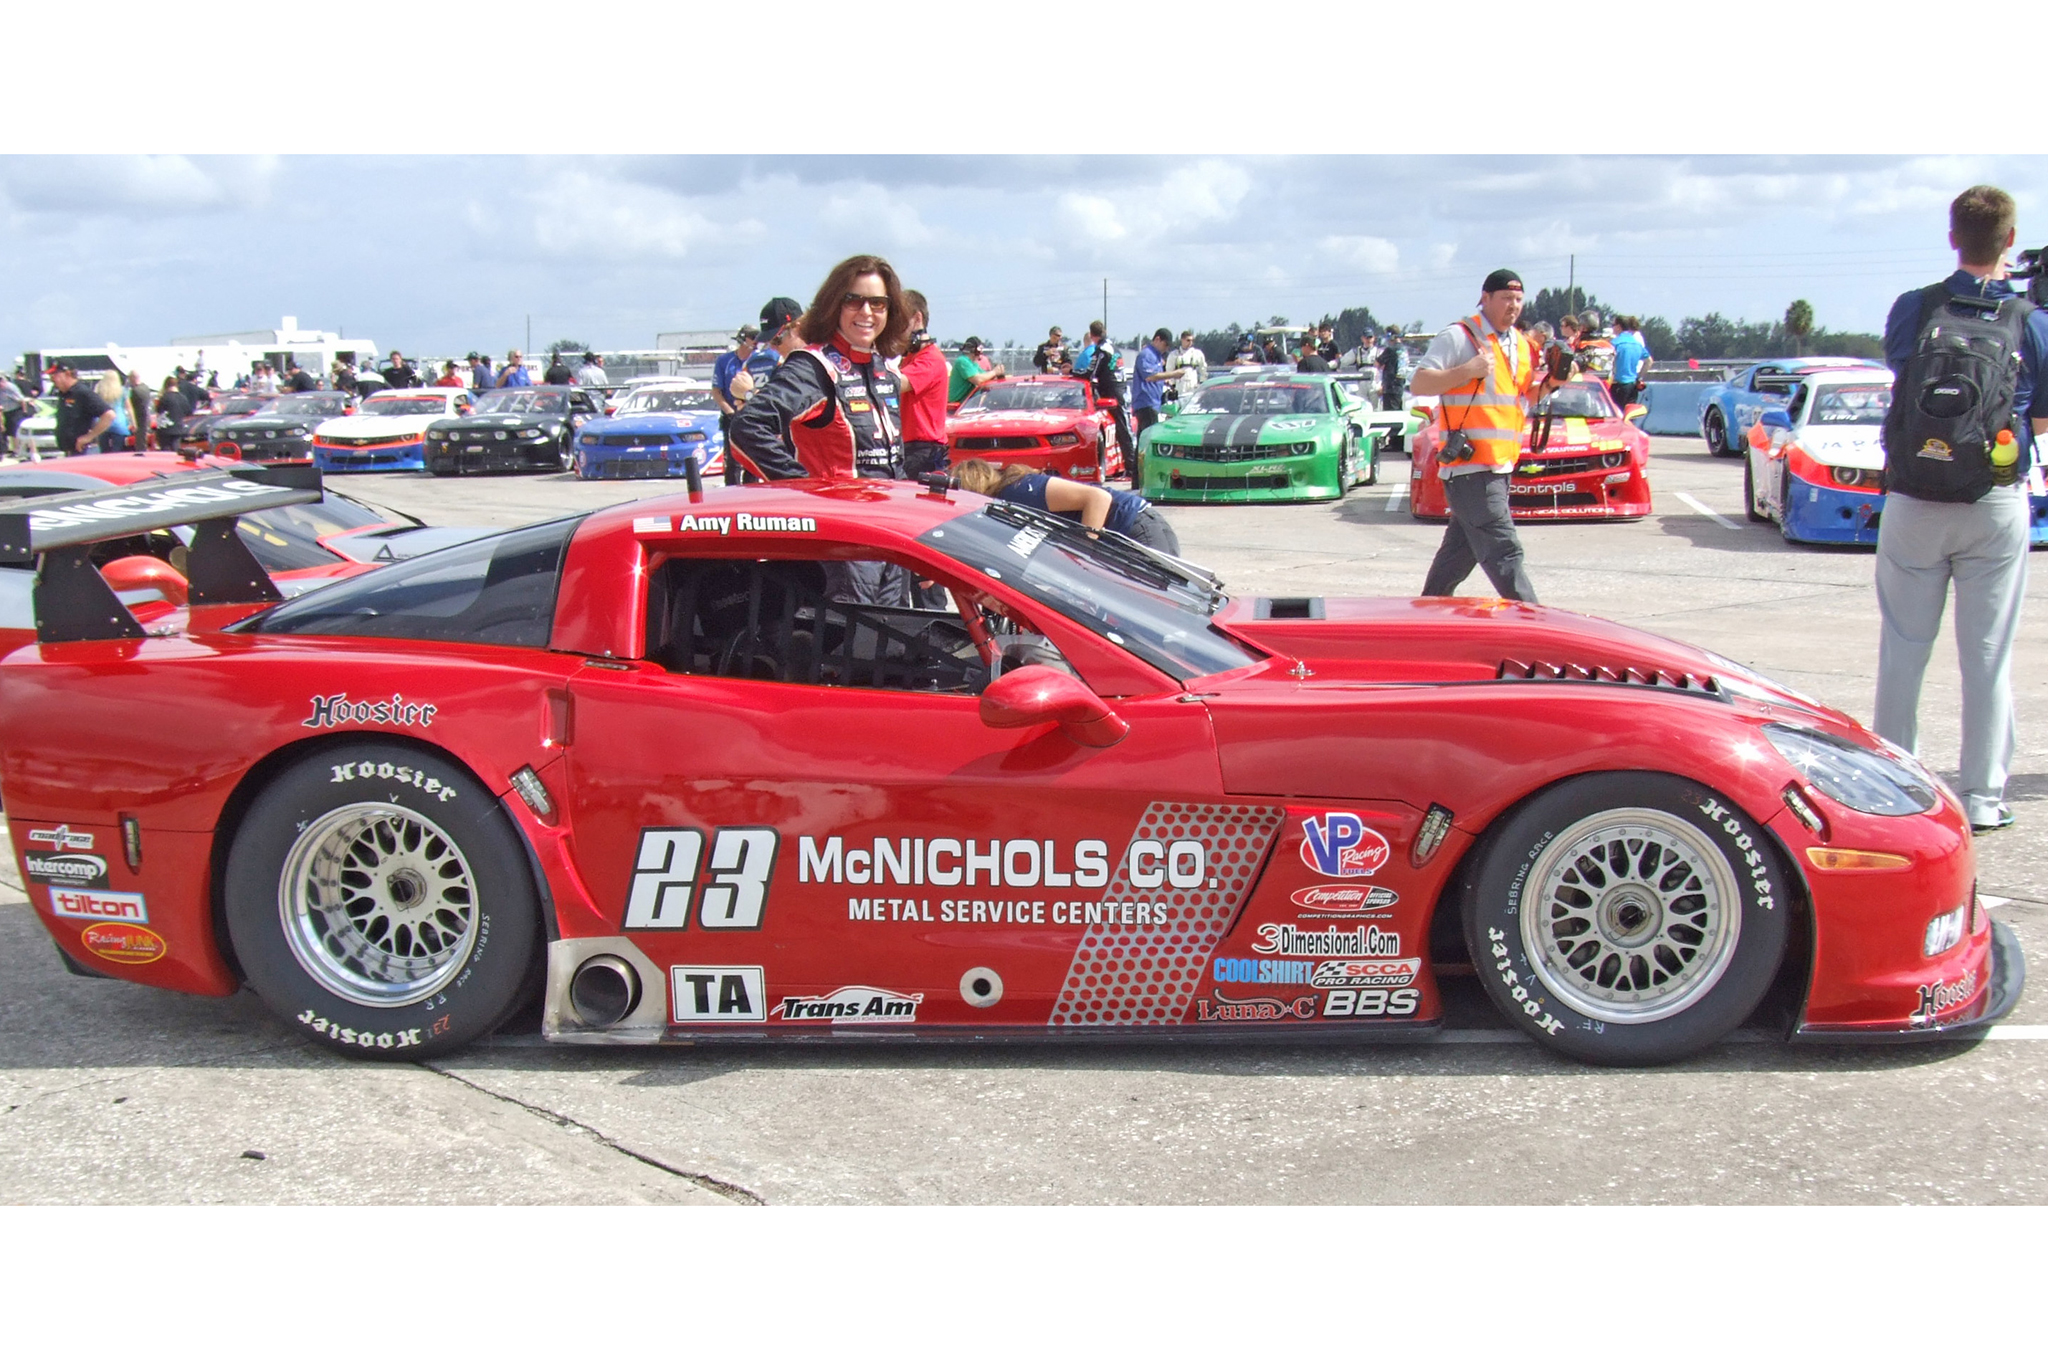 Amy Ruman drove the #23 Corvette to secure the pole position in the TA class on Friday and she beat all challengers again on Sunday in the feature race.